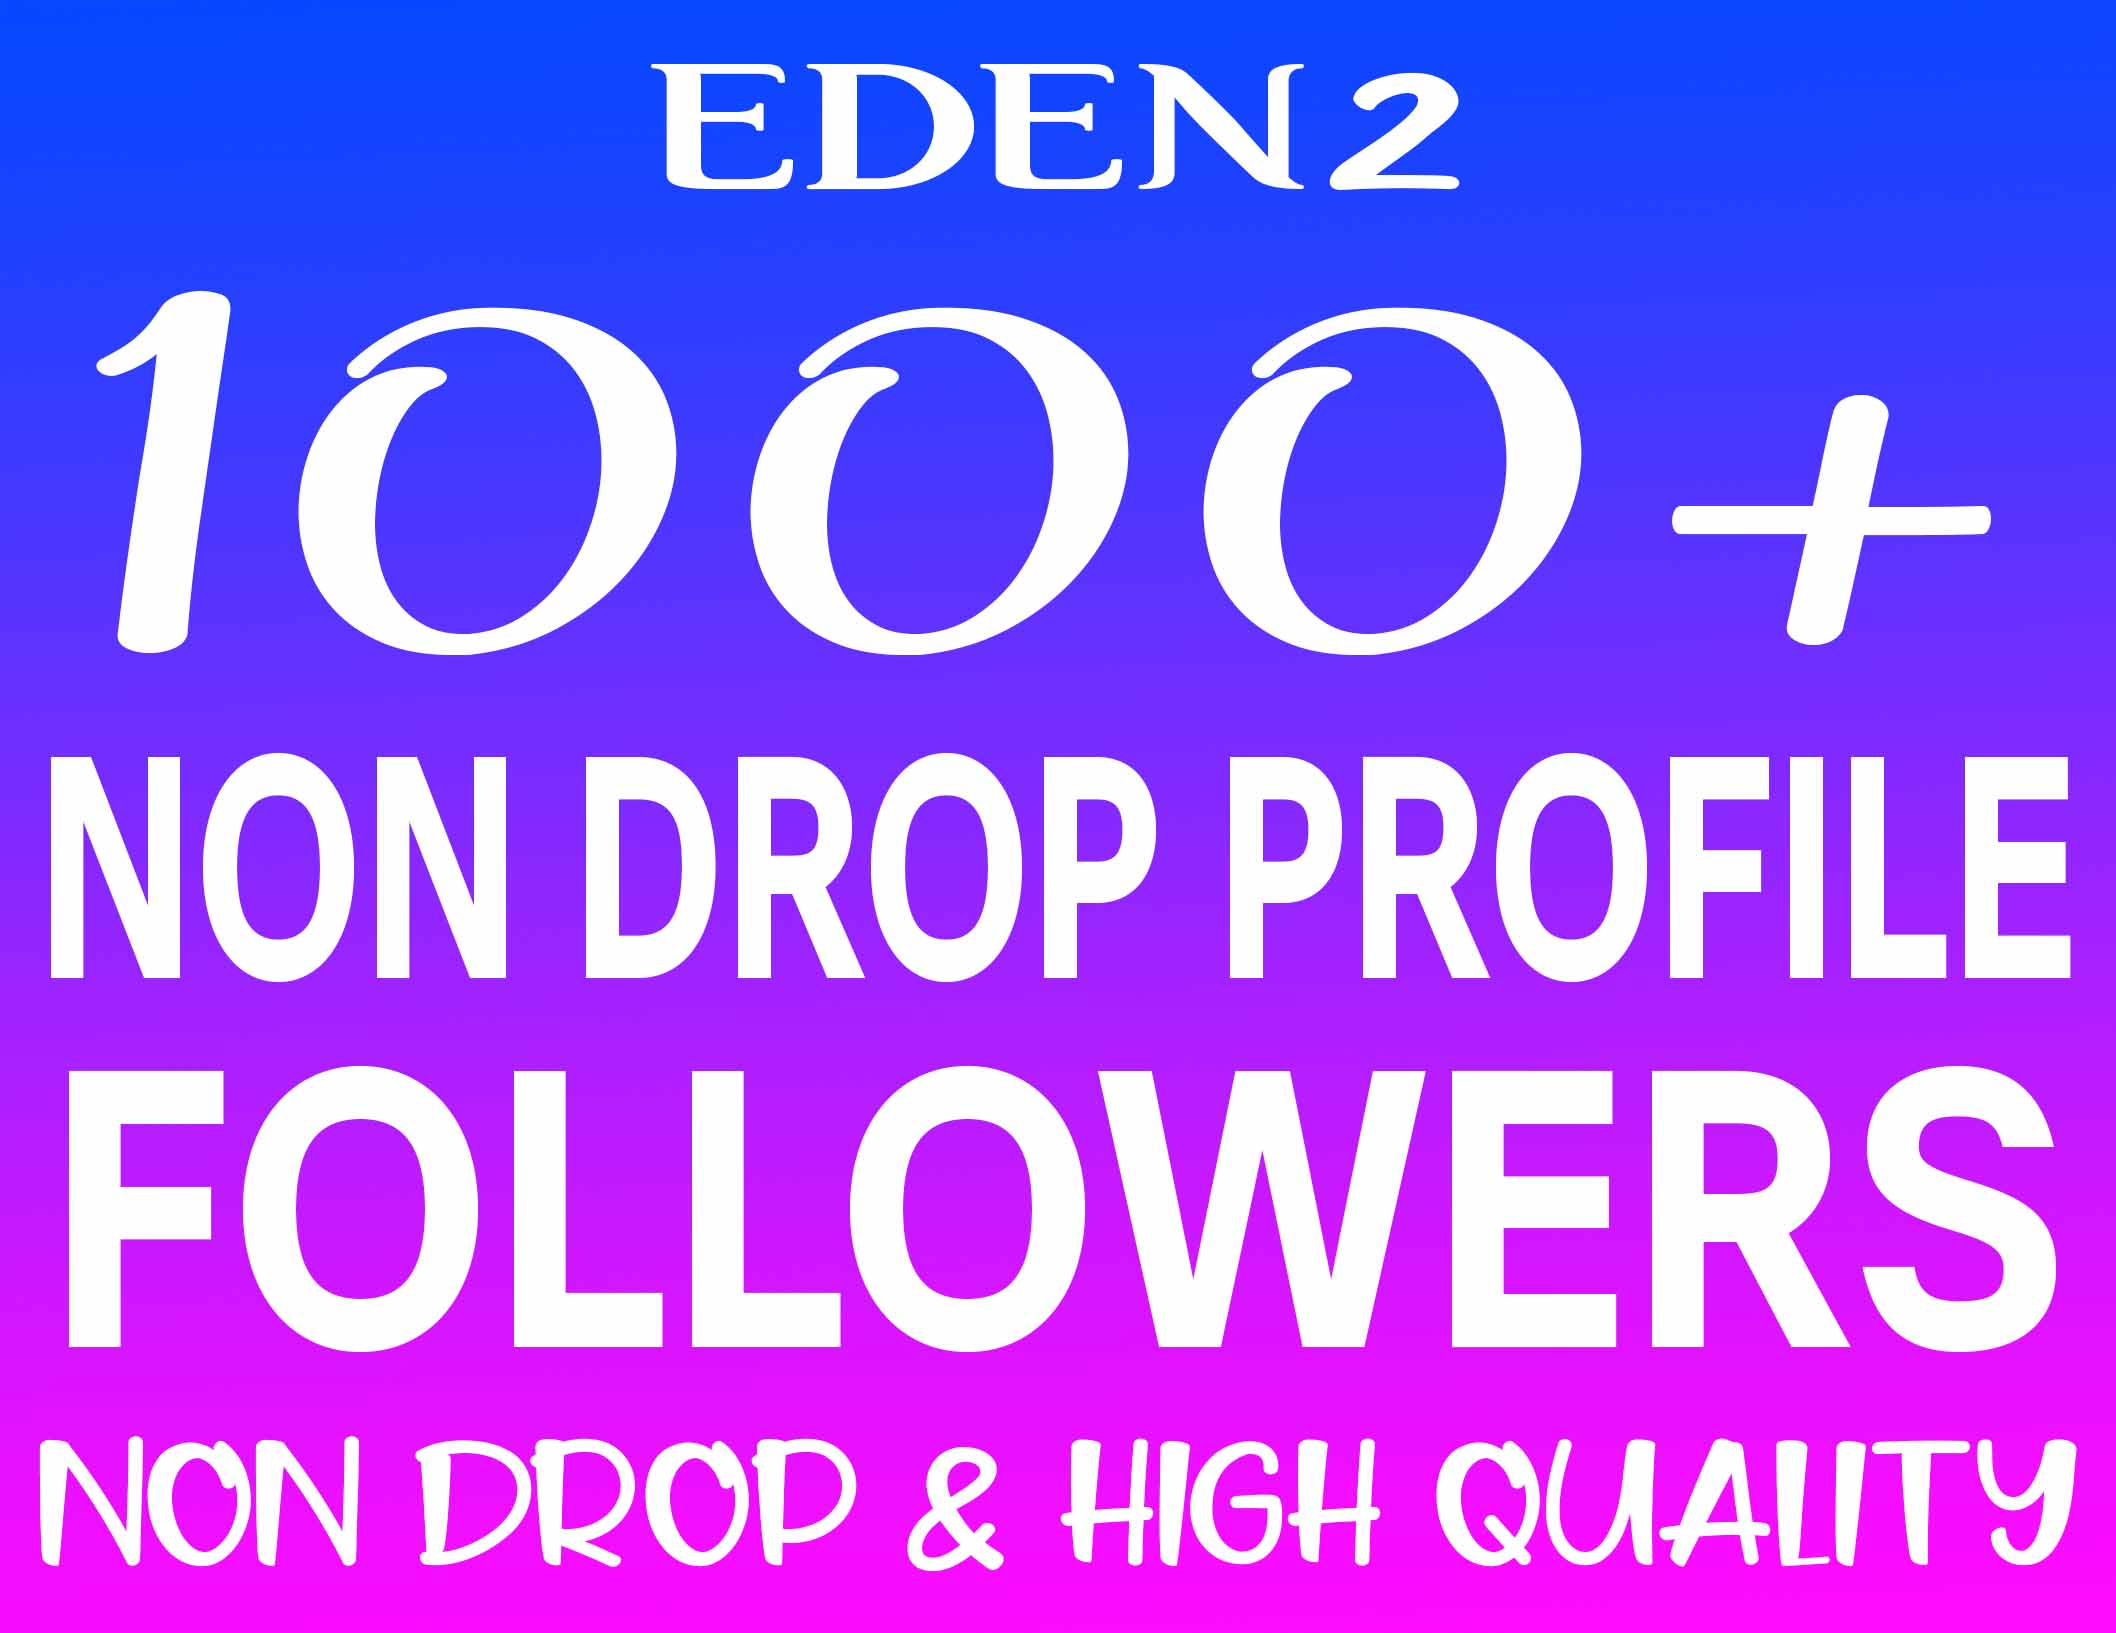 ADD 1000+ PROFILE FOLLOWERS REAL HIGH QUALITY & NON DROP - INSTANT START